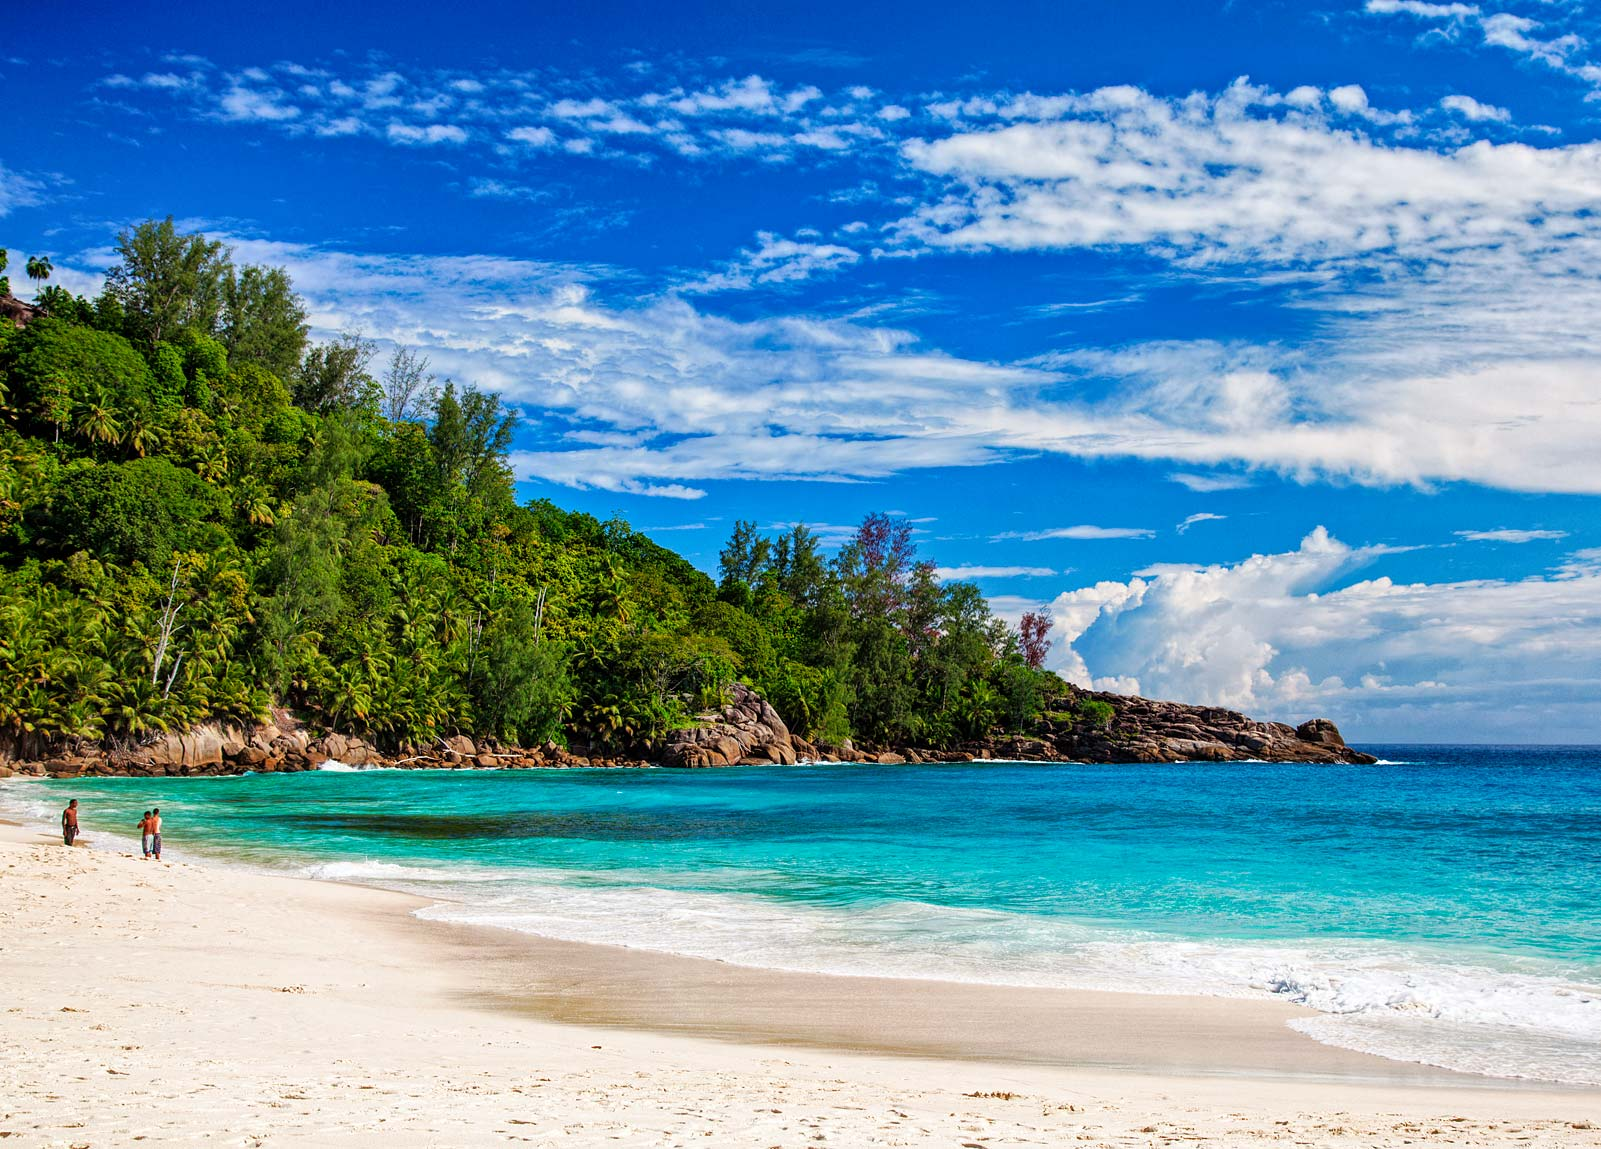 tropical island pictures. tropical islands in the